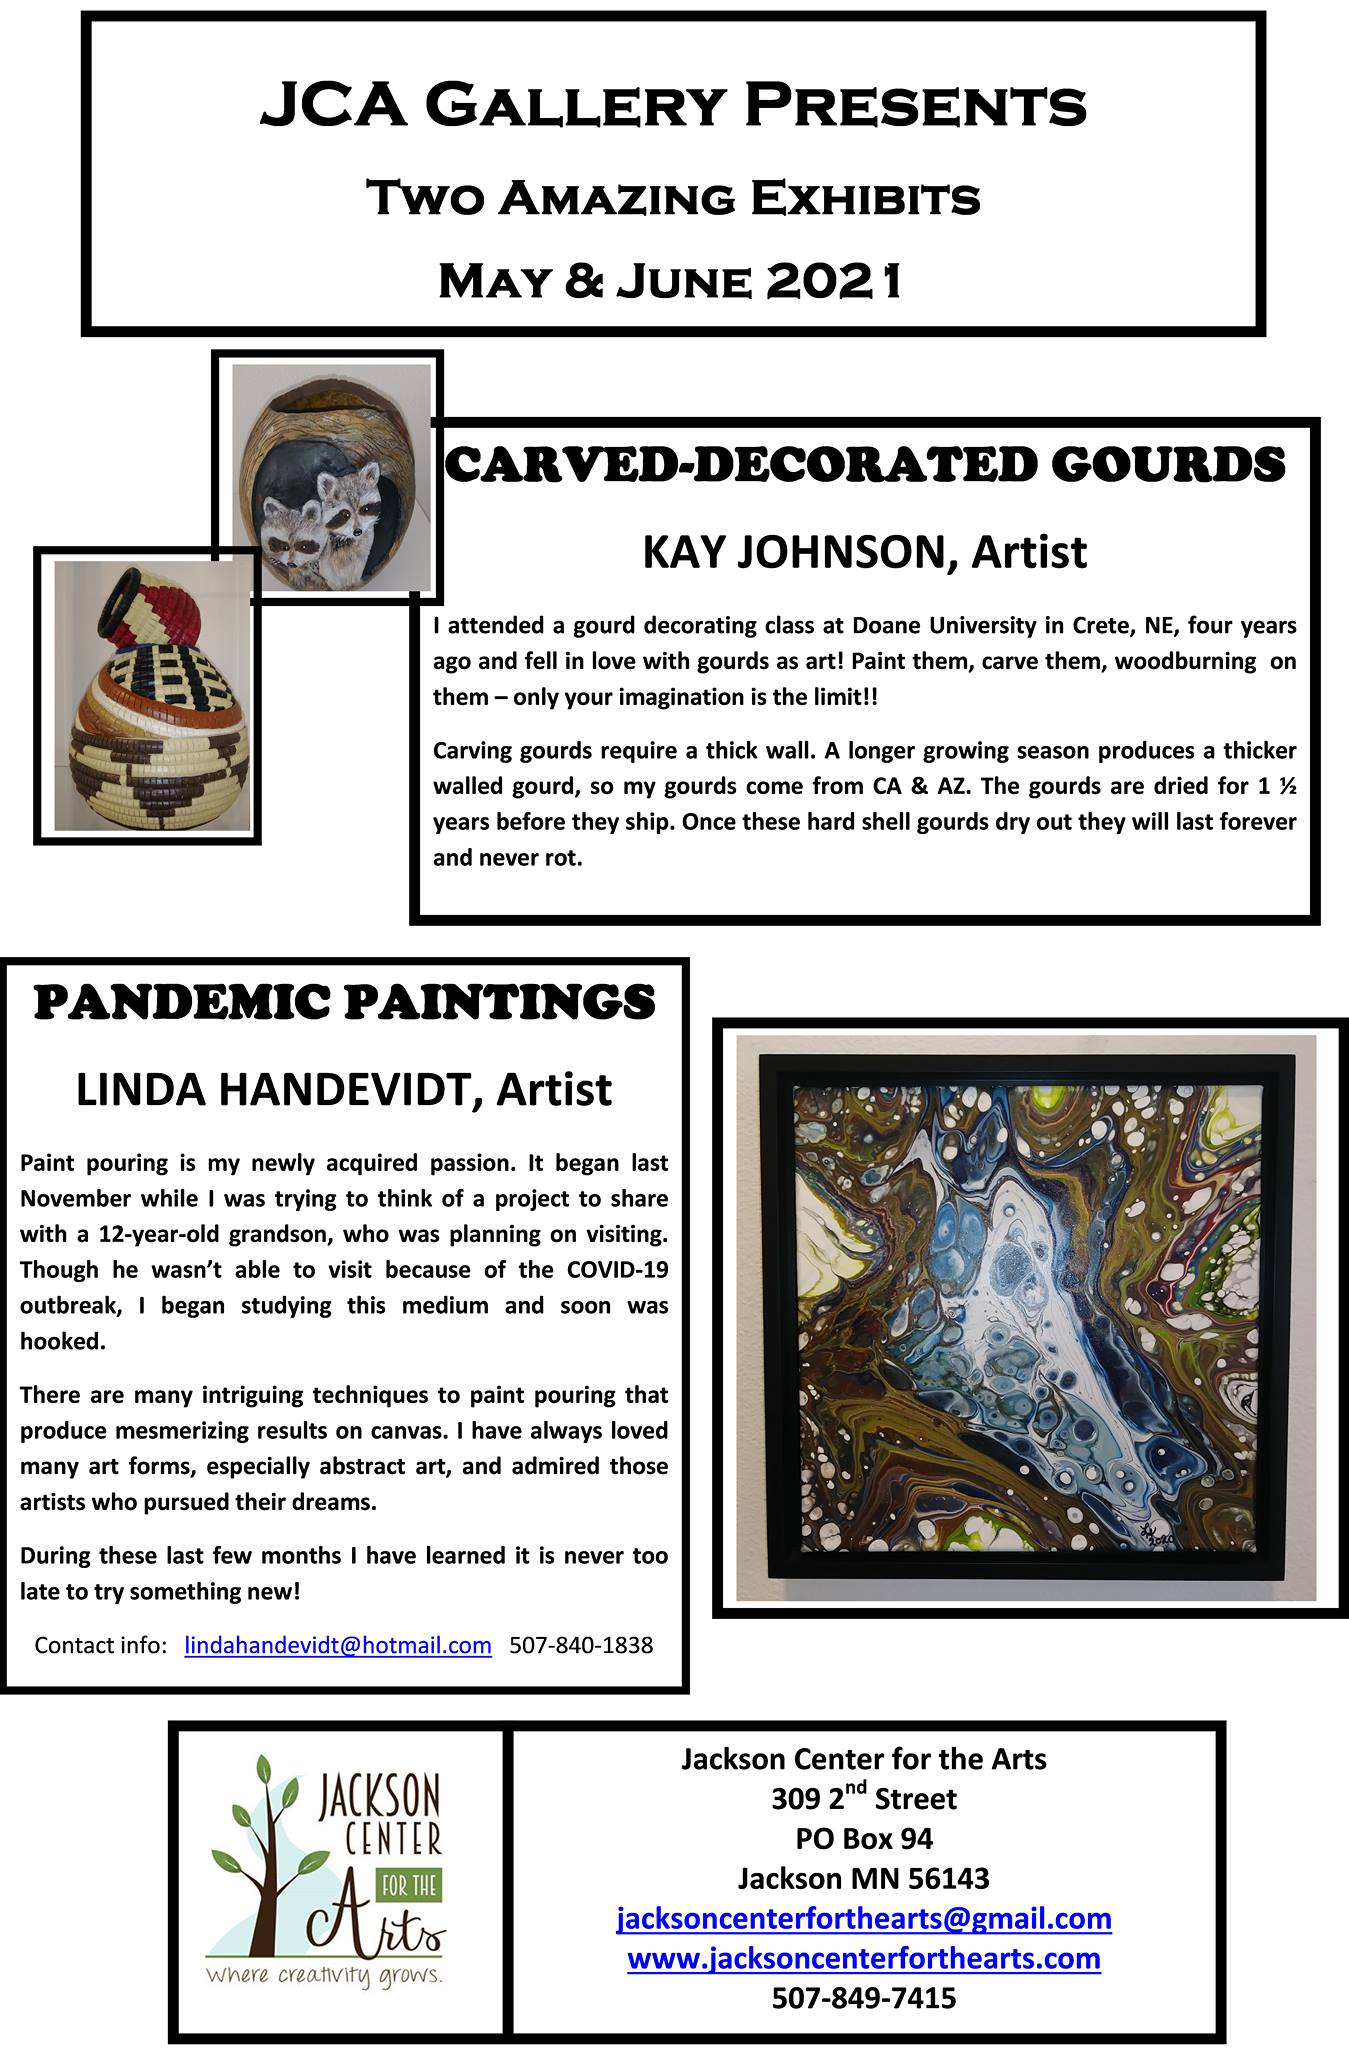 All text appears in body of event text. Also features 2 gourd pictures, one of carved and painted raccoons and one of geometric painted designs. Also a photo of a paint pour, with multiple colors.